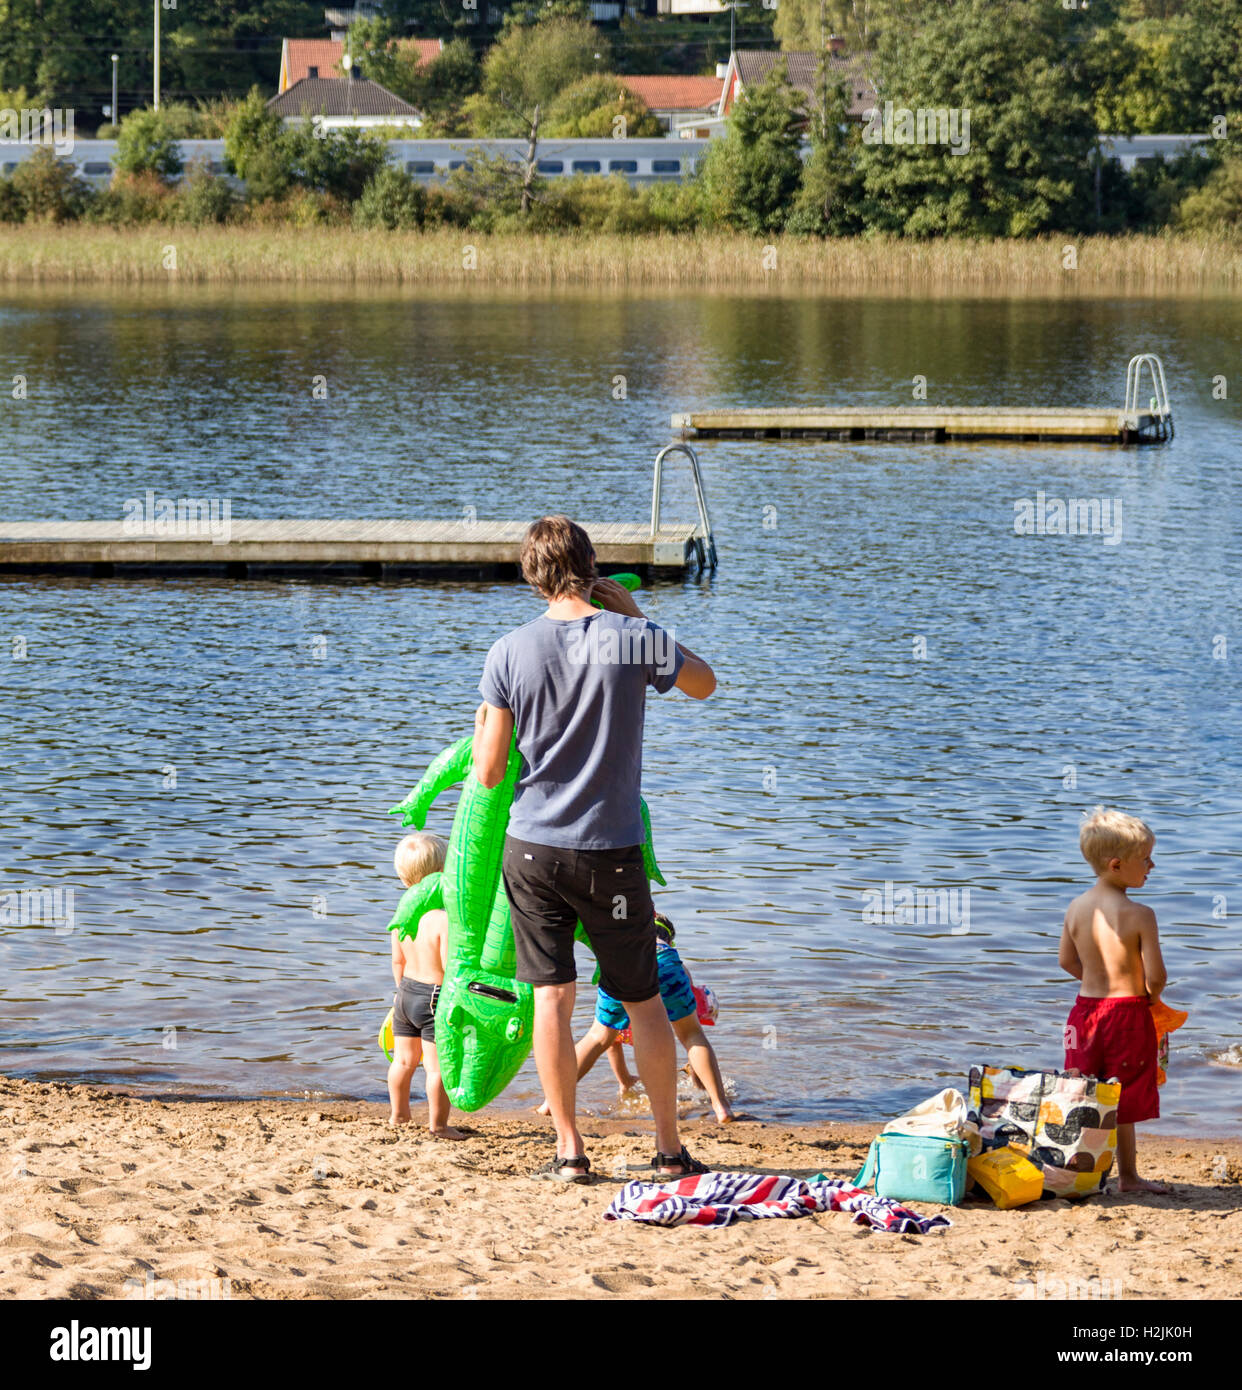 Family father with inflatable crocodile and children at the beach  Model Release: No.  Property Release: No. - Stock Image